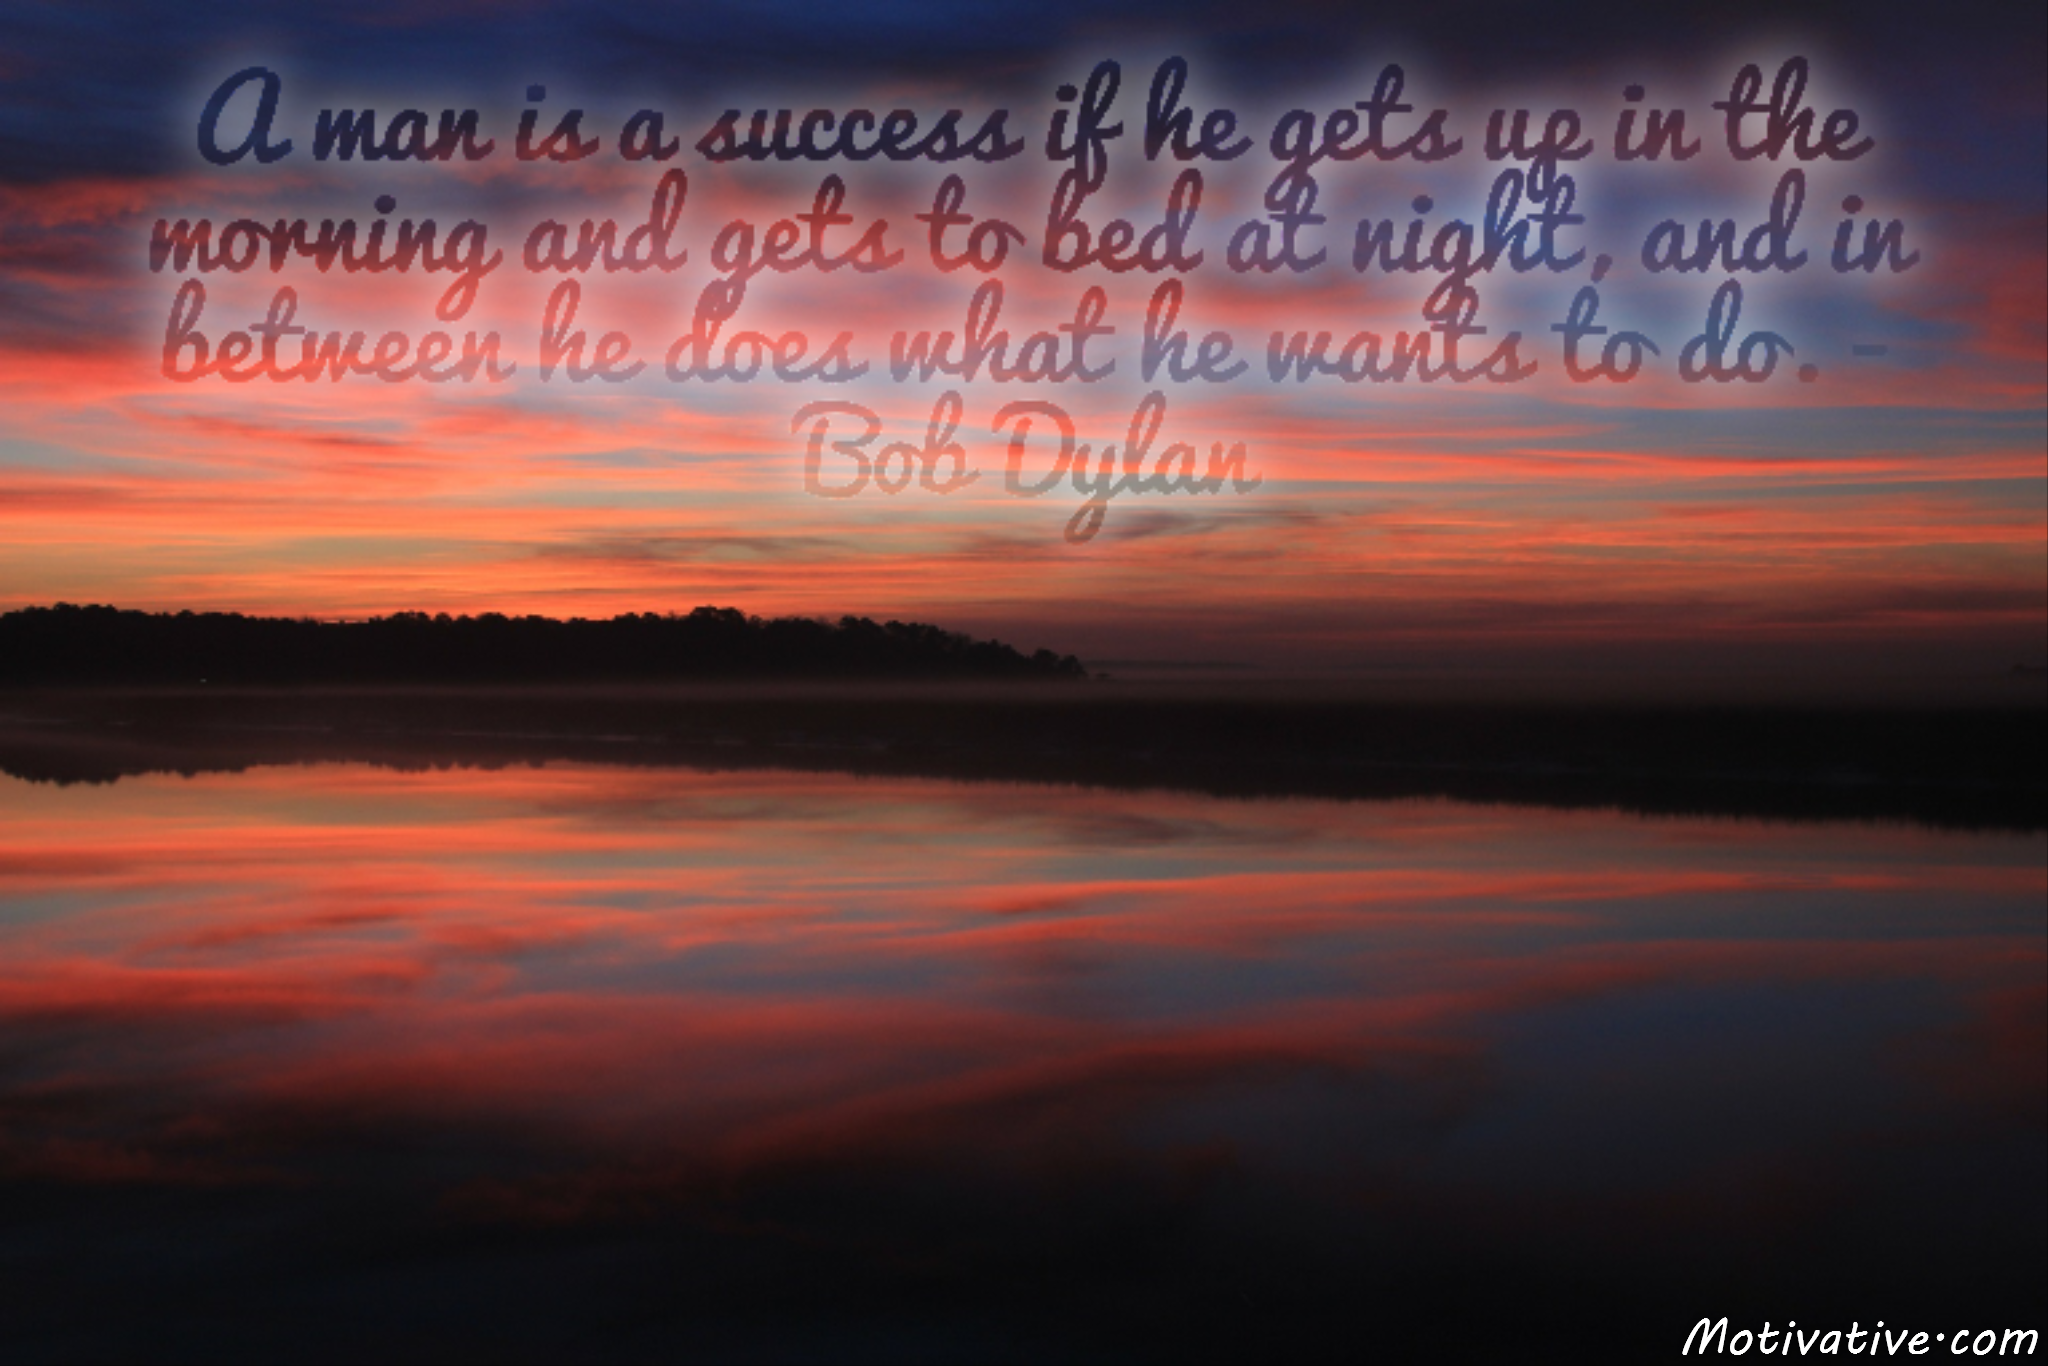 A man is a success if he gets up in the morning and gets to bed at night, and in between he does what he wants to do. – Bob Dylan